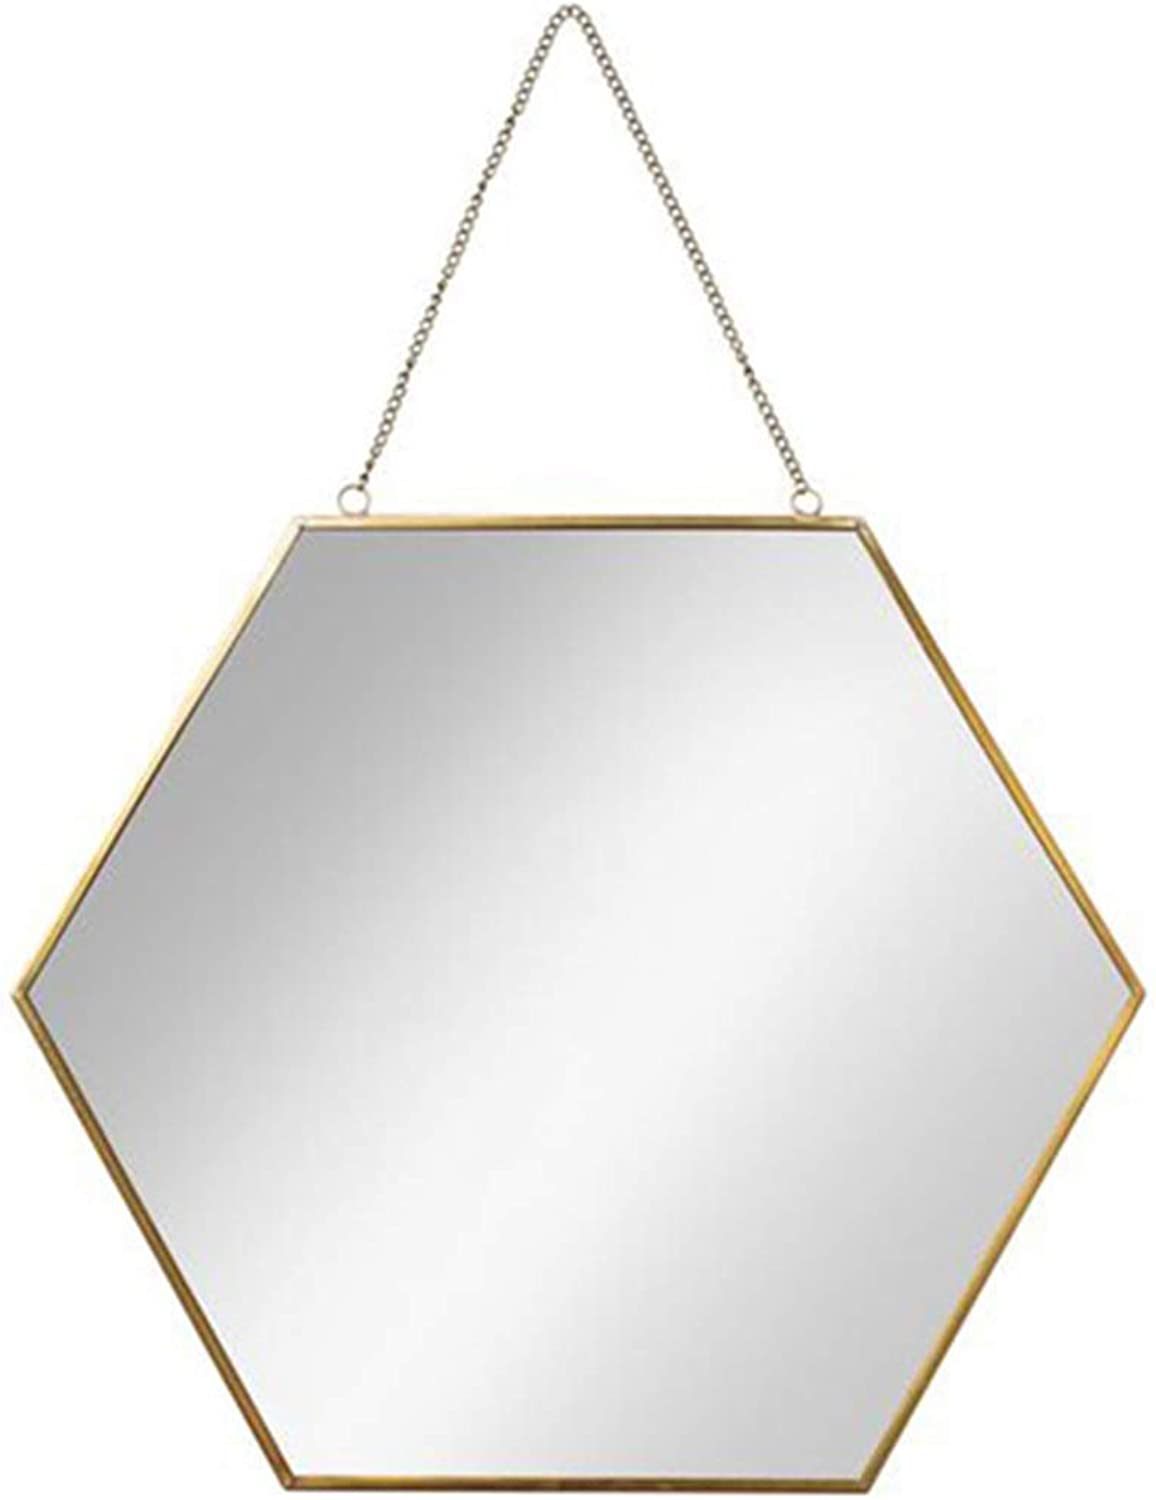 Bathroom Hexagon Mirror Brass Frame Wall-Mounted Metal Mirrors Living Room Decorated Mural Mirror Wall Hanging Modern Design 1 1 Decorative Mirror Holder (Size   Diameter 40cm)